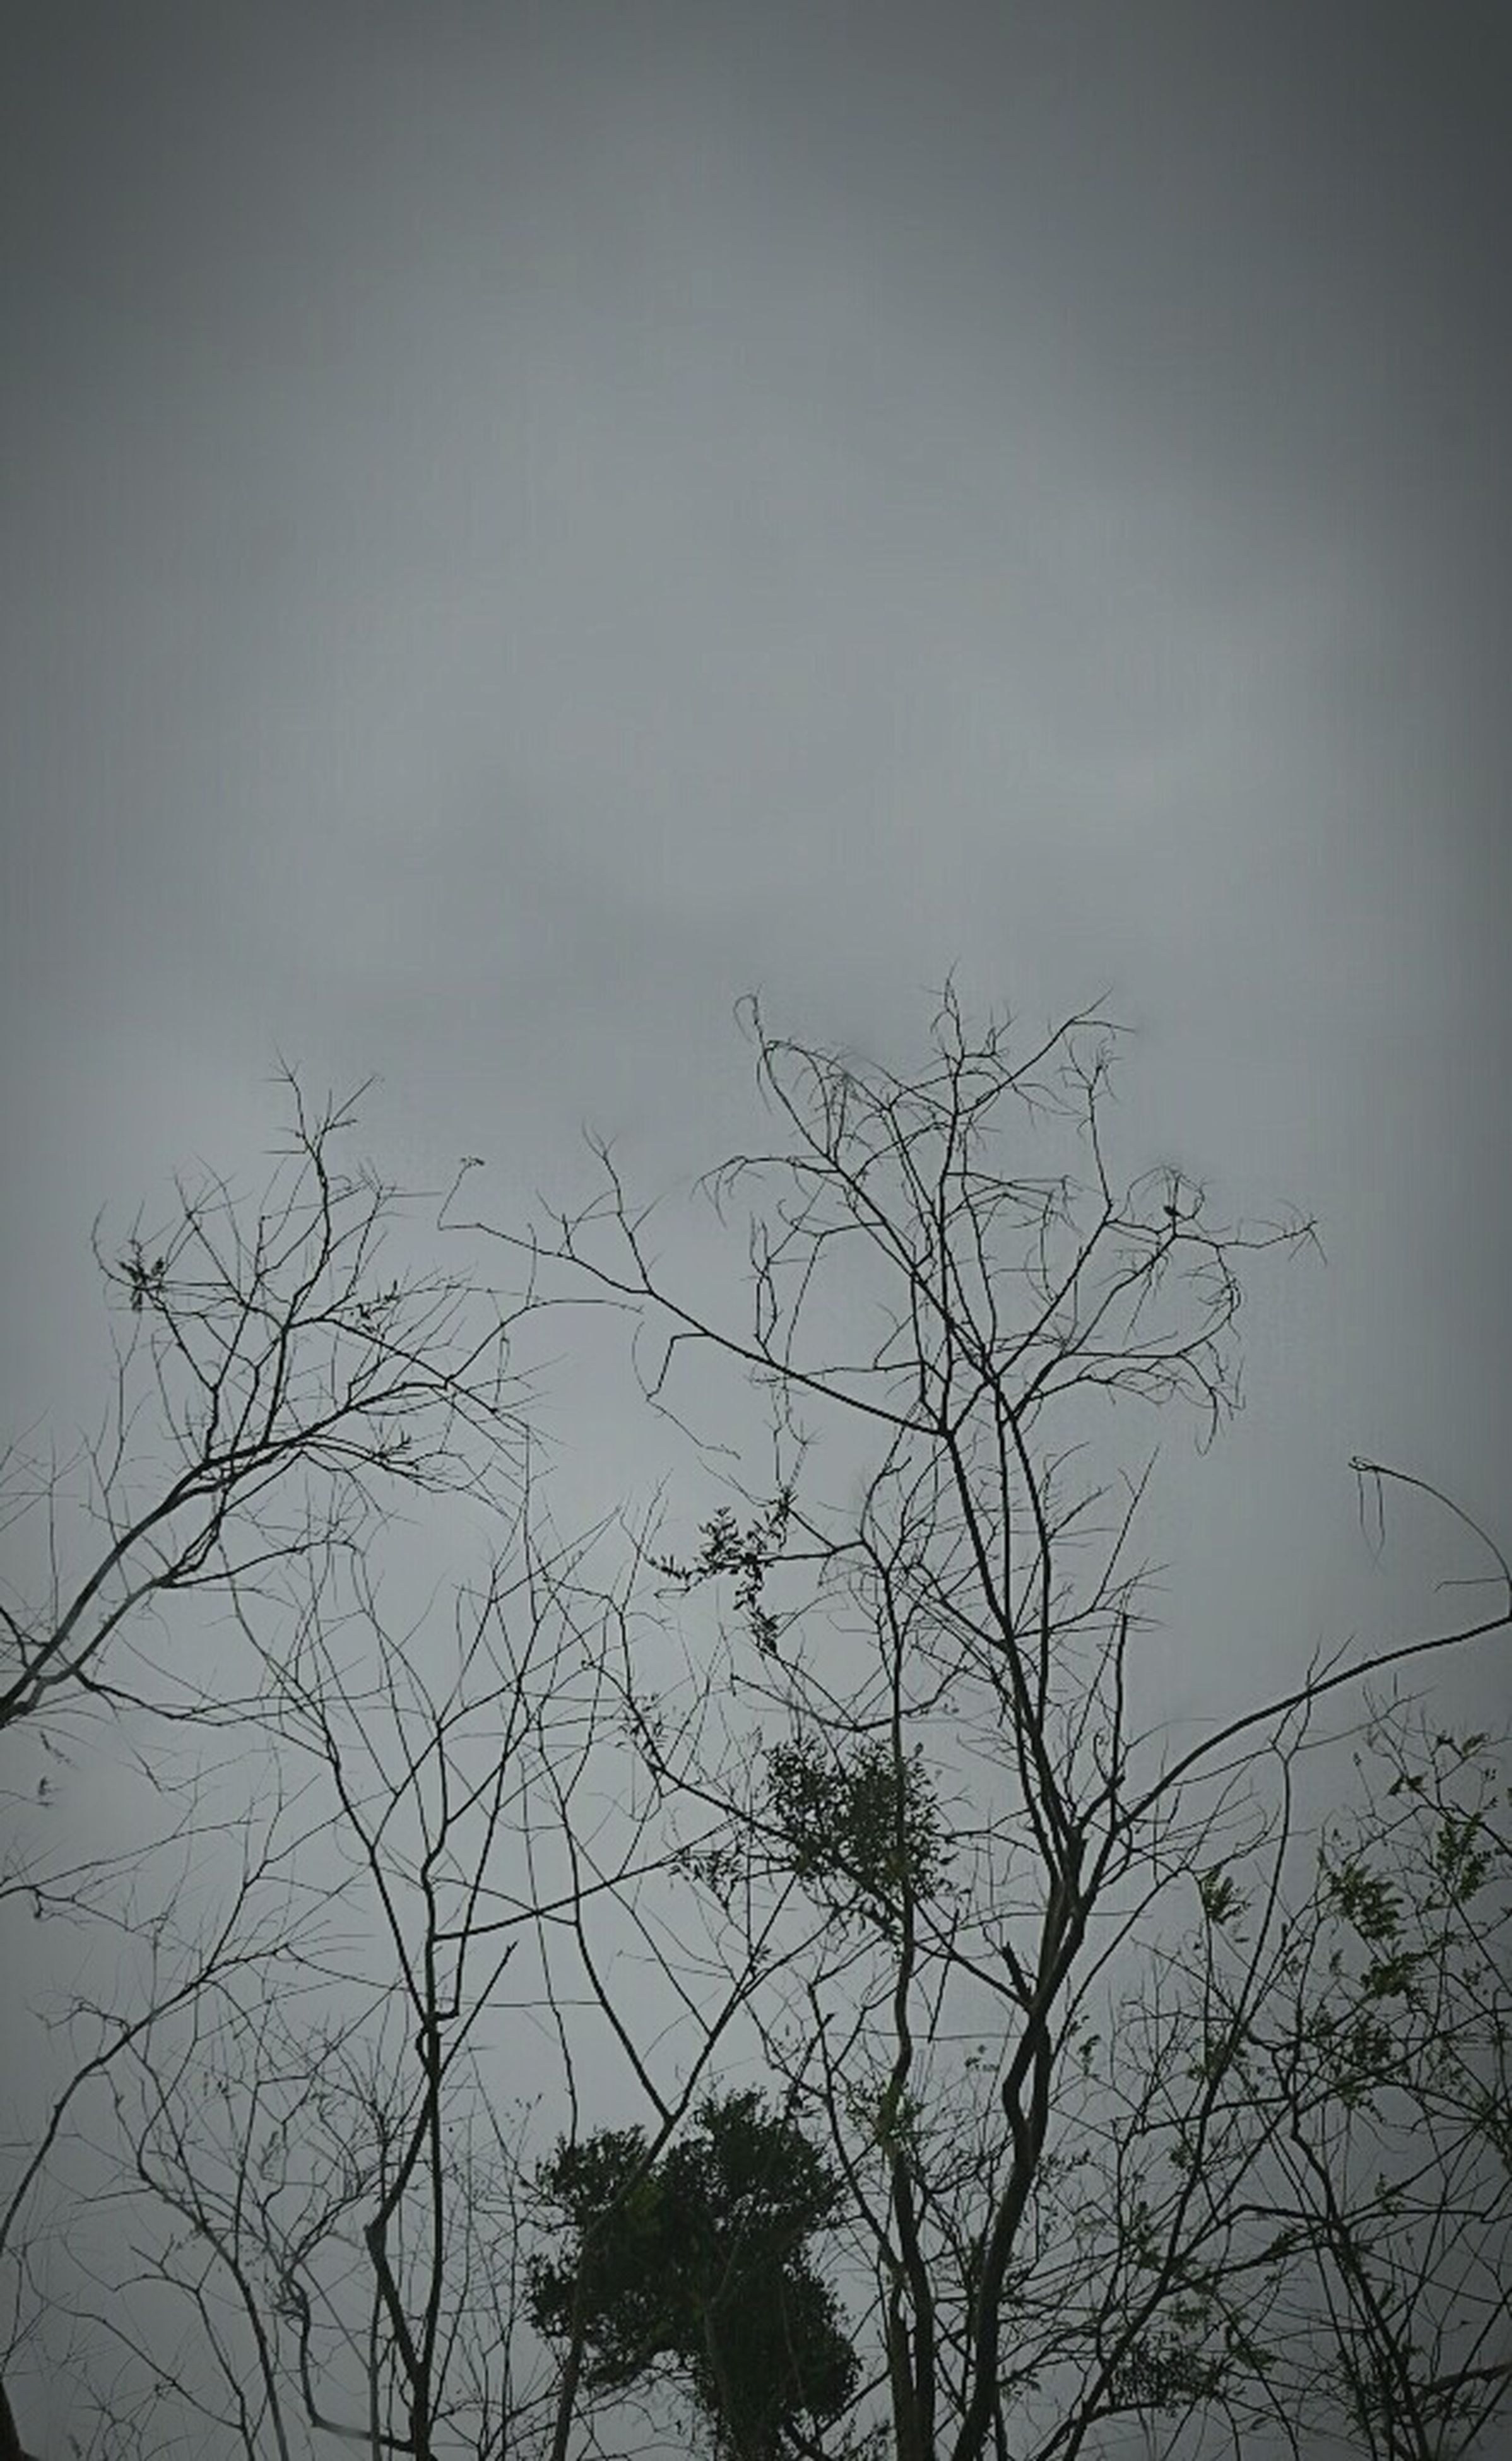 nature, silhouette, no people, dusk, tree, sky, cloud - sky, beauty in nature, low angle view, bare tree, outdoors, branch, storm cloud, day